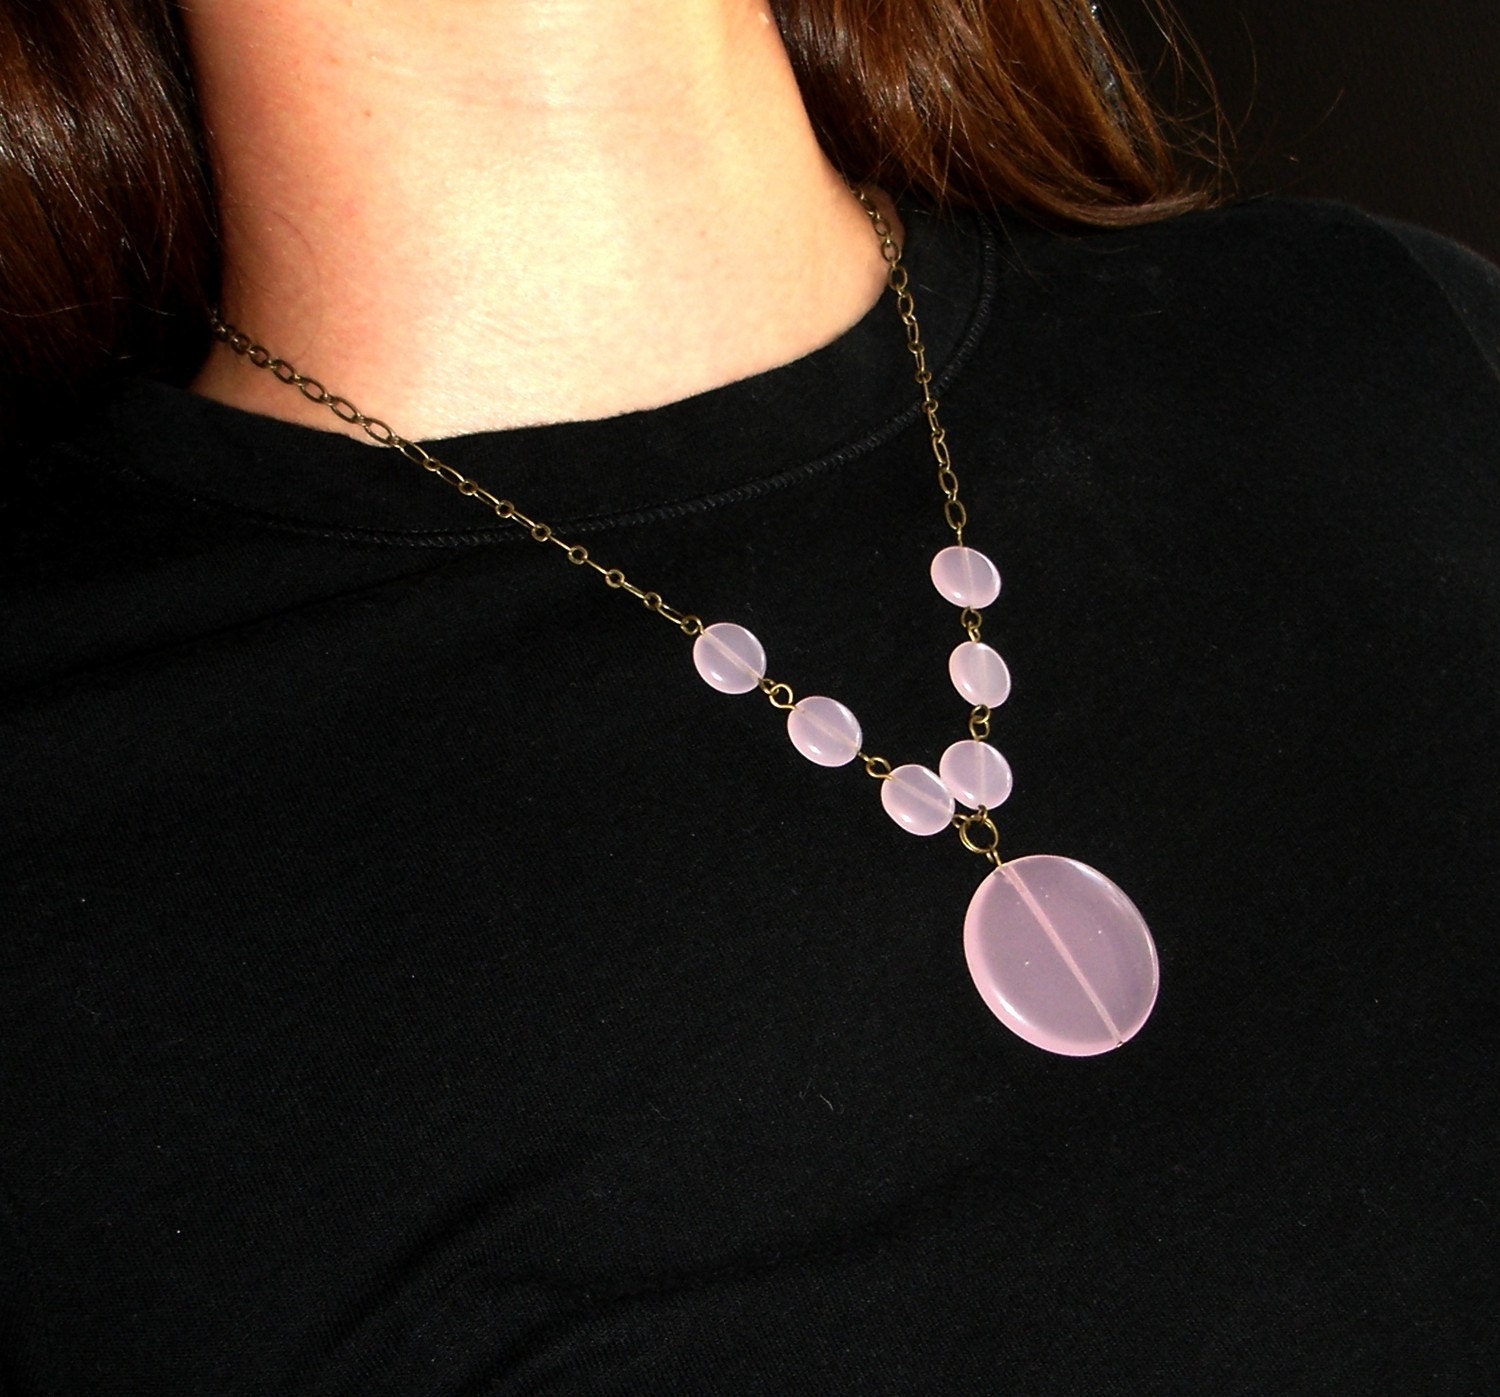 Pale Pink Necklace with Free Matching Earrings - Glass Beads and Bronze Chain